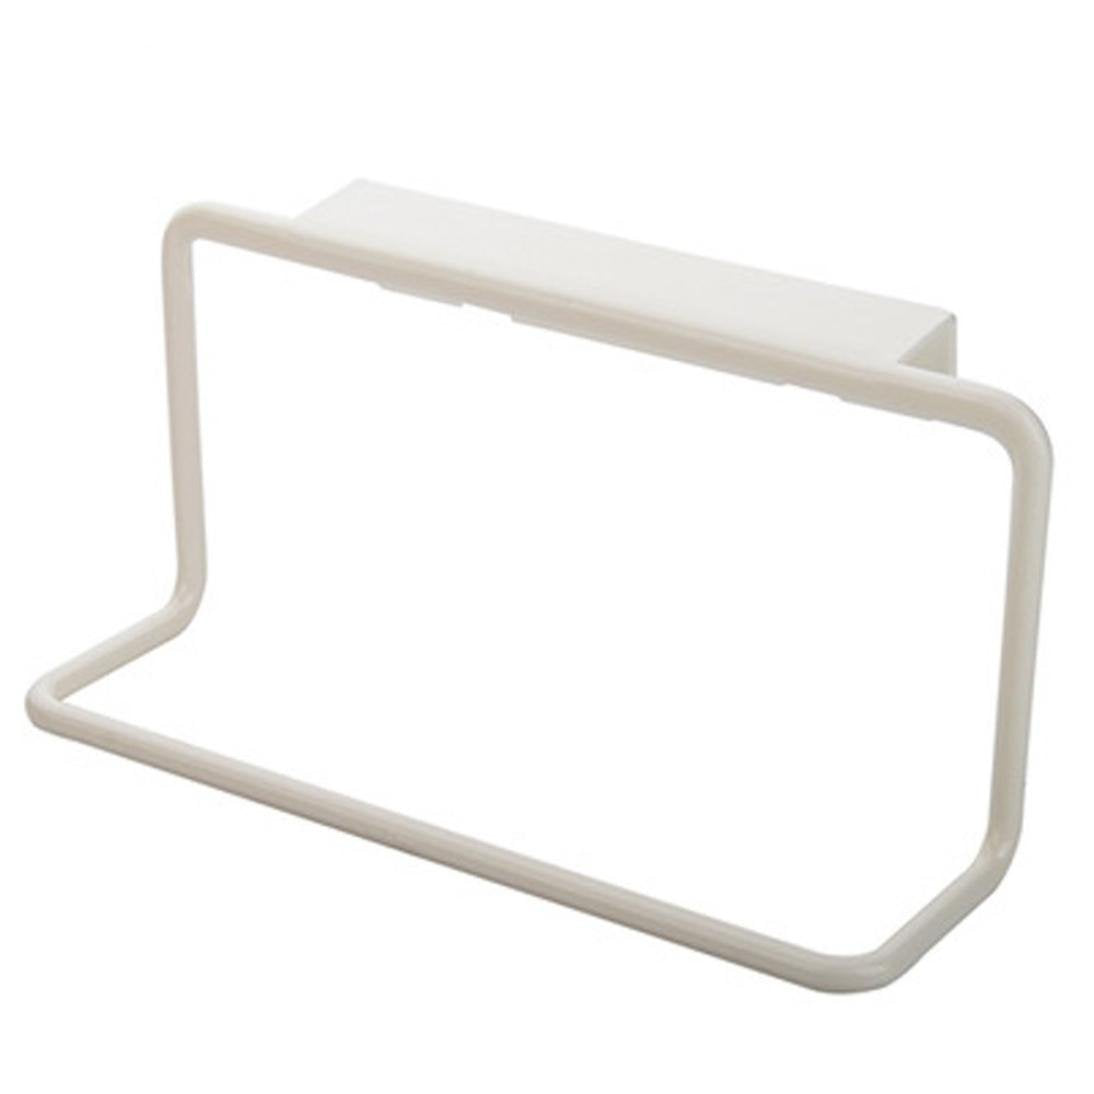 DZT1968 Towel Rack Hanging Holder Organizer Bathroom Kitchen Cabinet Cupboard Hanger (White)